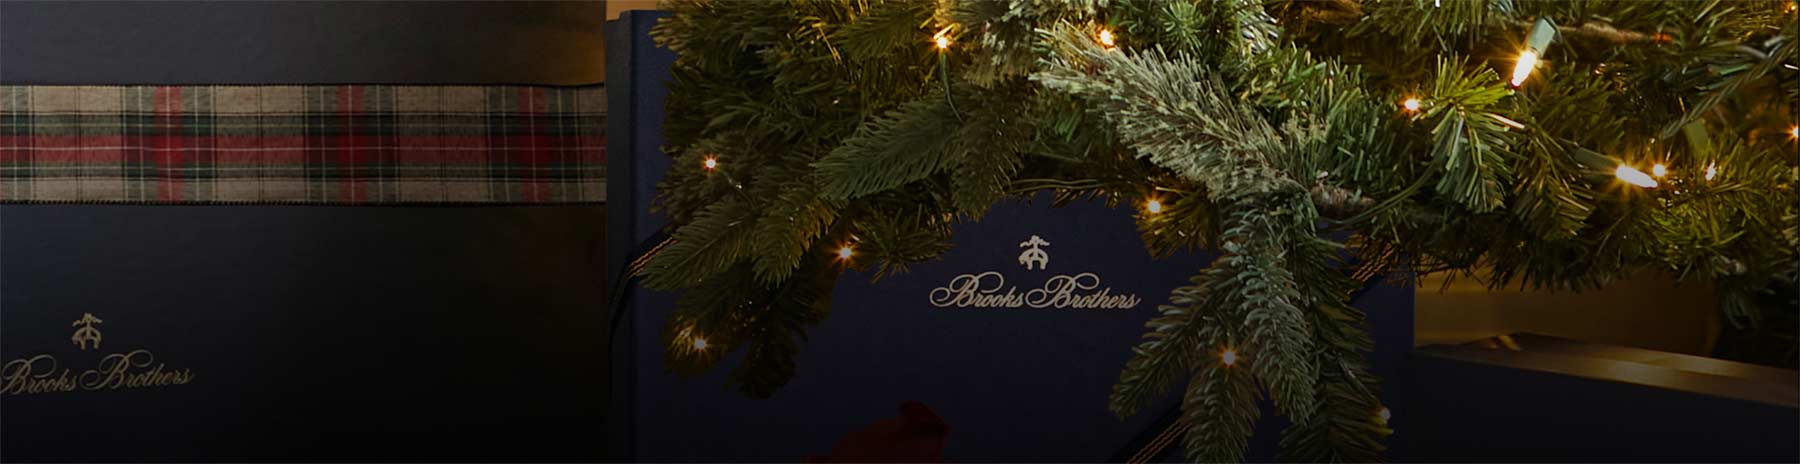 The Black Friday Event at Brooks Brothers